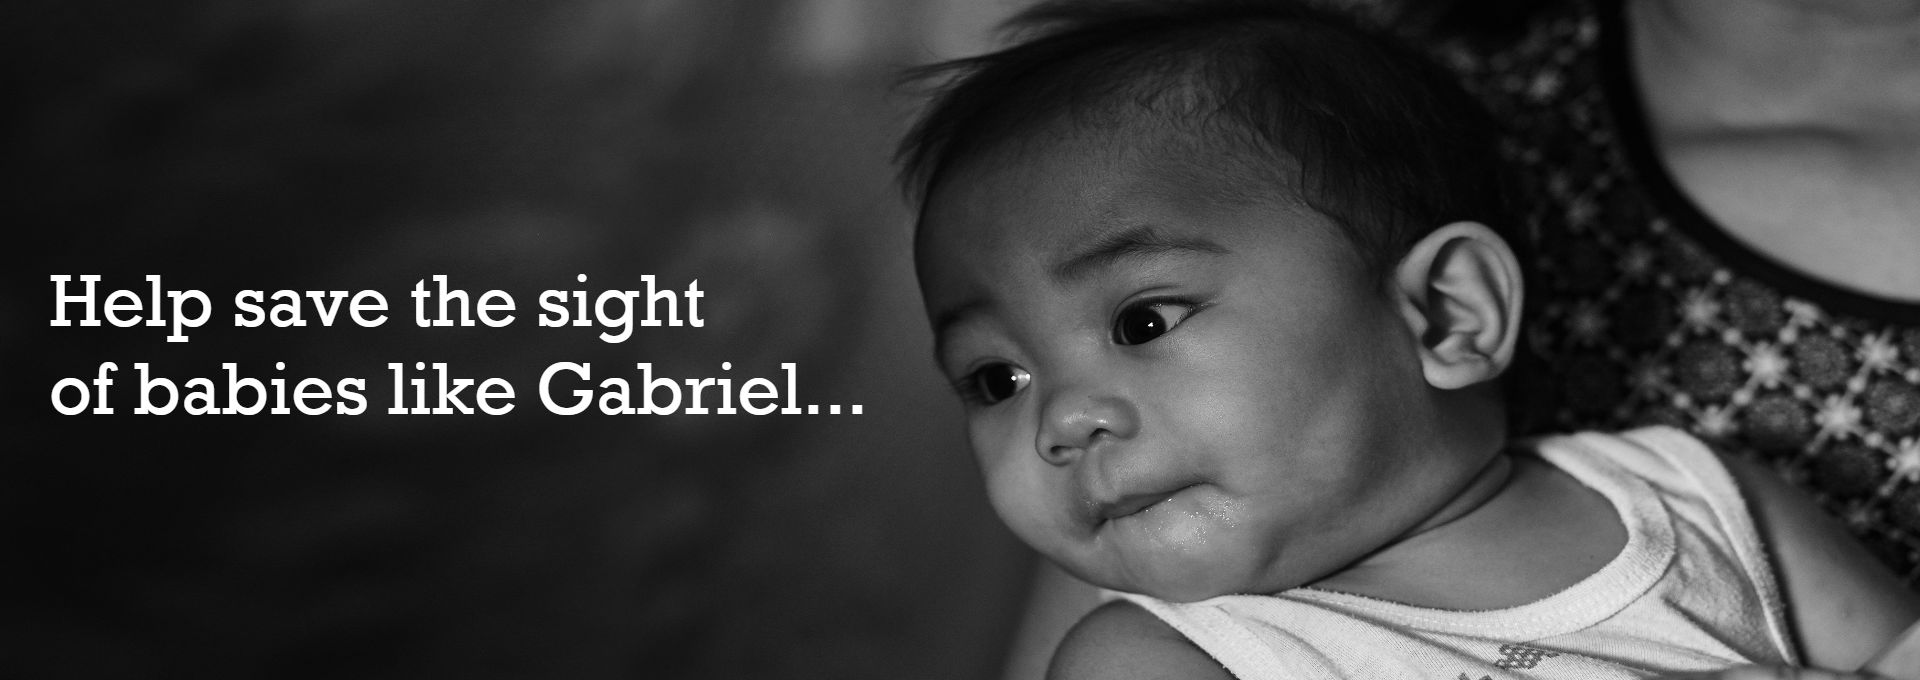 Baby Gabriel from Philippines suffers from ROP and is at risk of going needlessly blind.